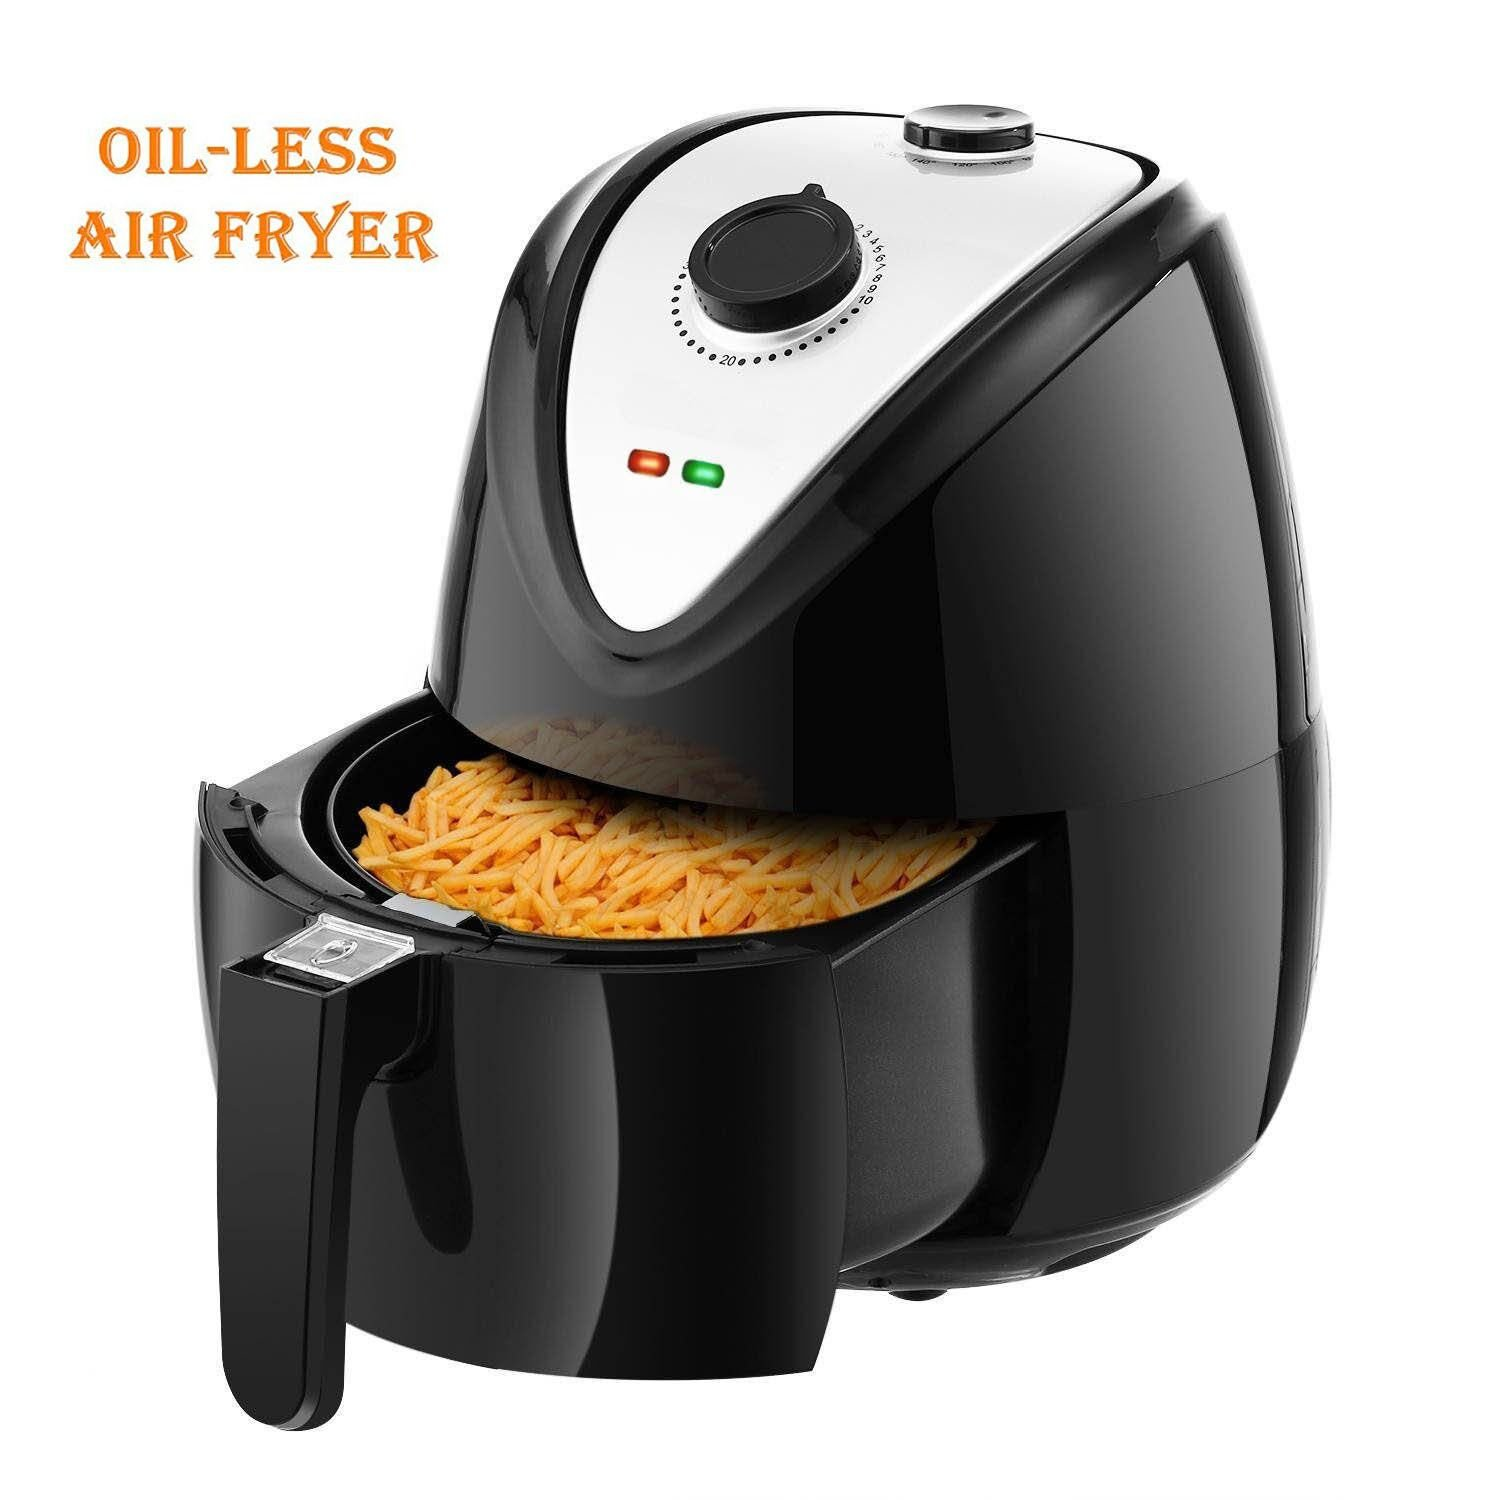 Cosway 4.5L 1400W Multi-Function Electric Air Fryer for Healthy Oil Free Cooking Barbecue Home Kitchen Favor